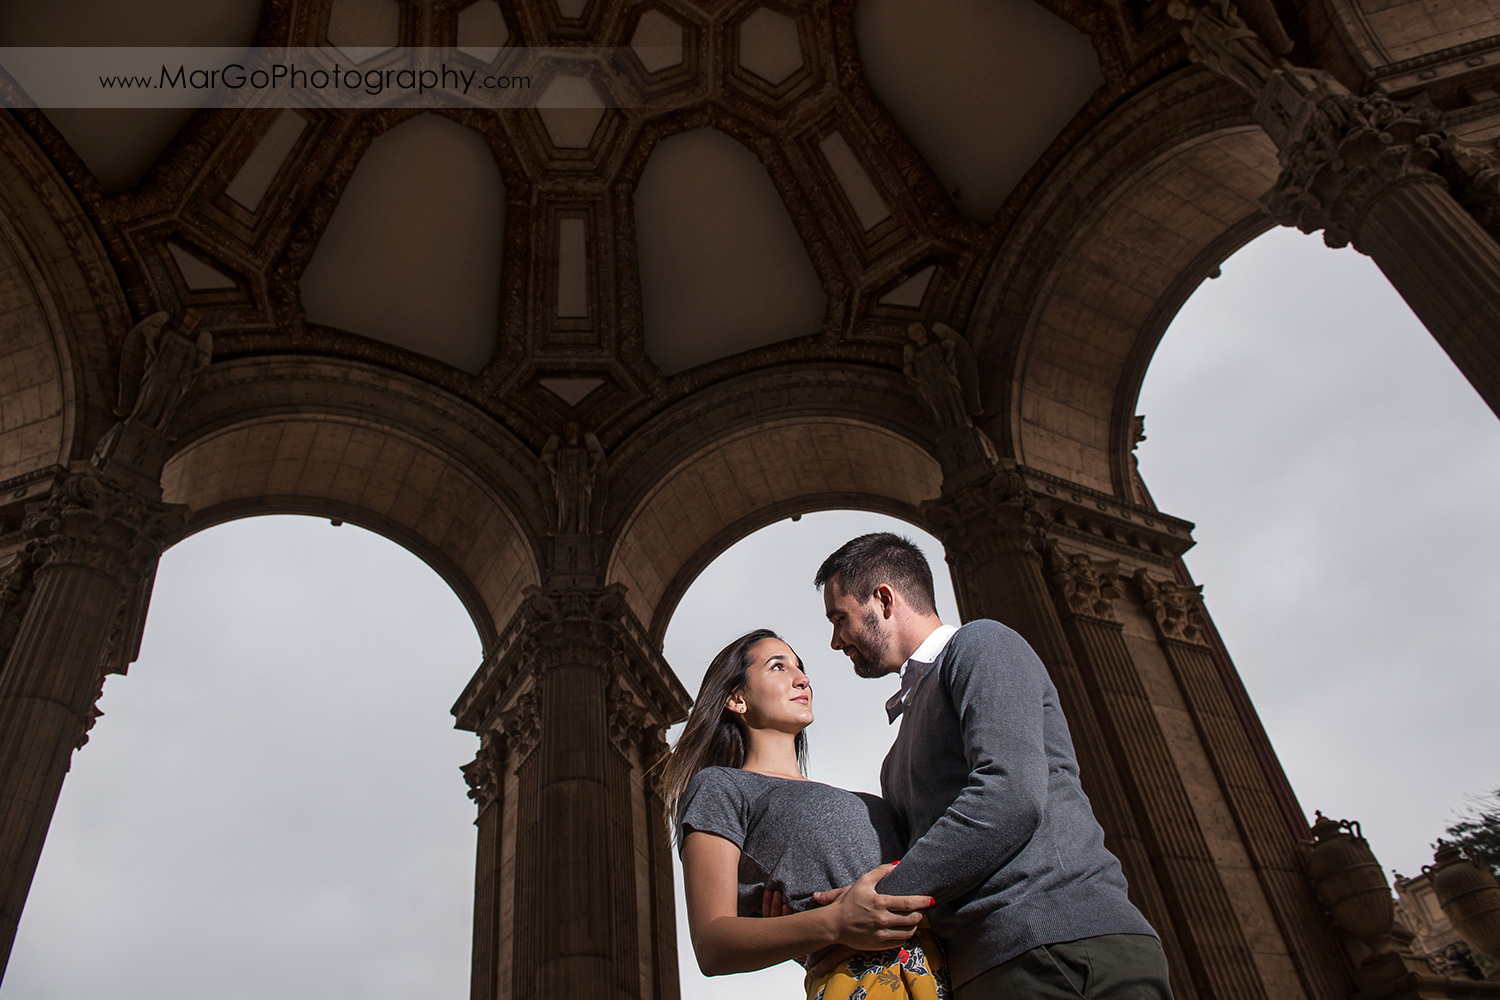 engagement session at Palace of Fine Arts in San Francisco - couple under the dome